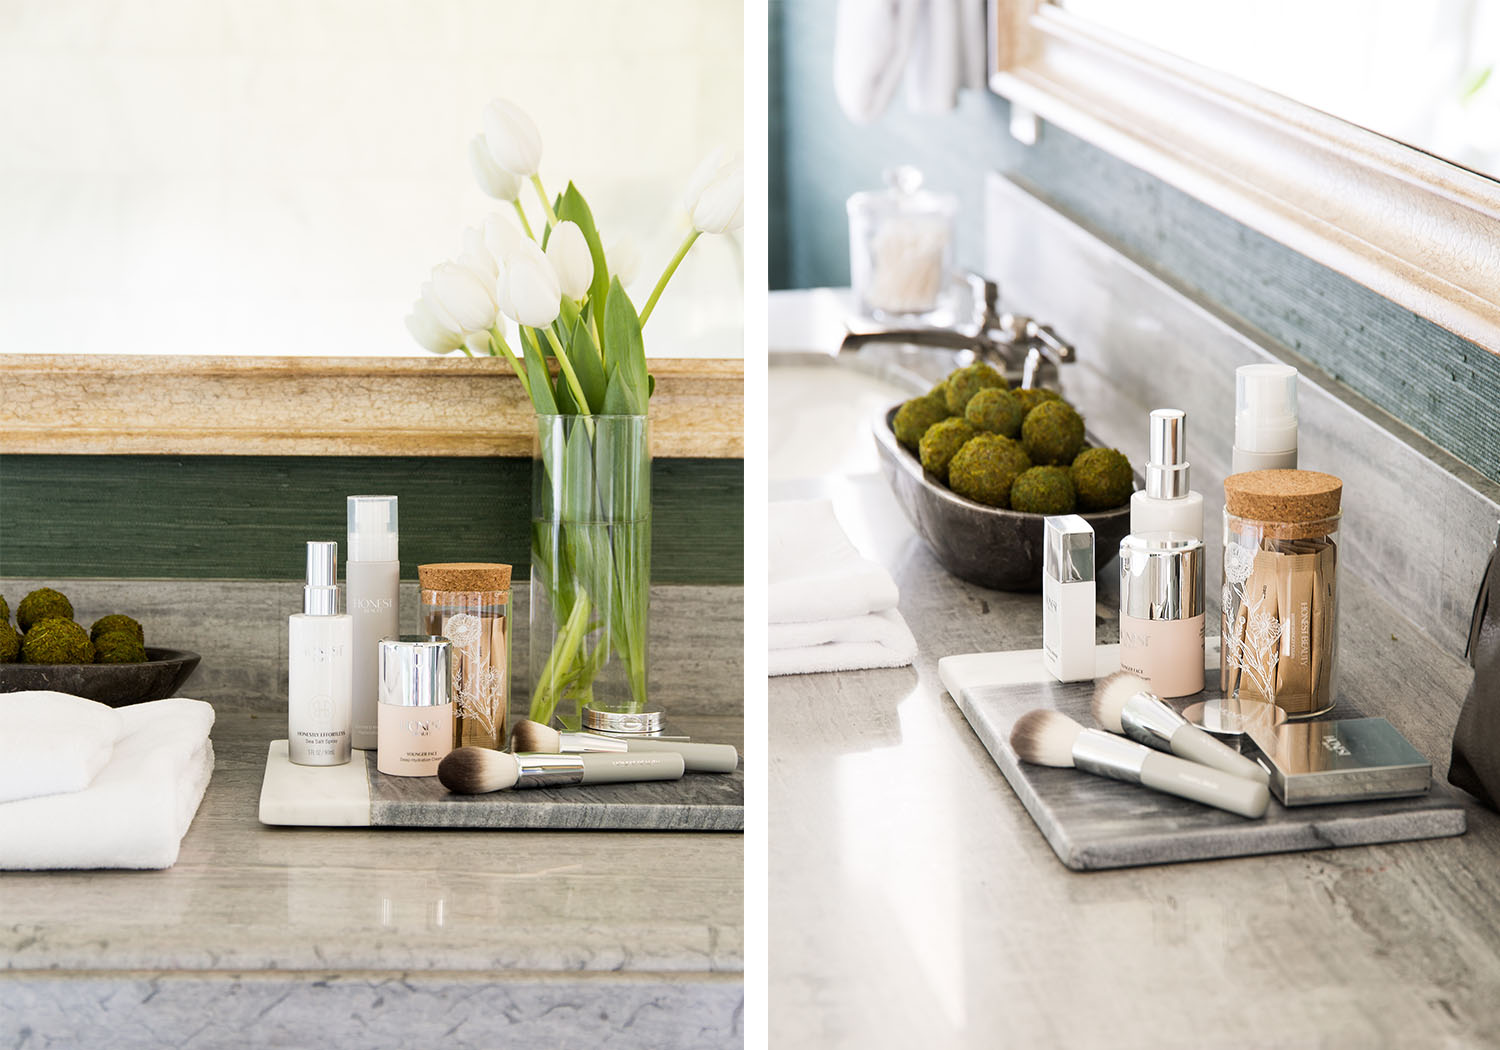 Placed on top of a marble bathroom vanity are fresh, white tulips and beauty essentials to deliver a luxe spa-like experience.